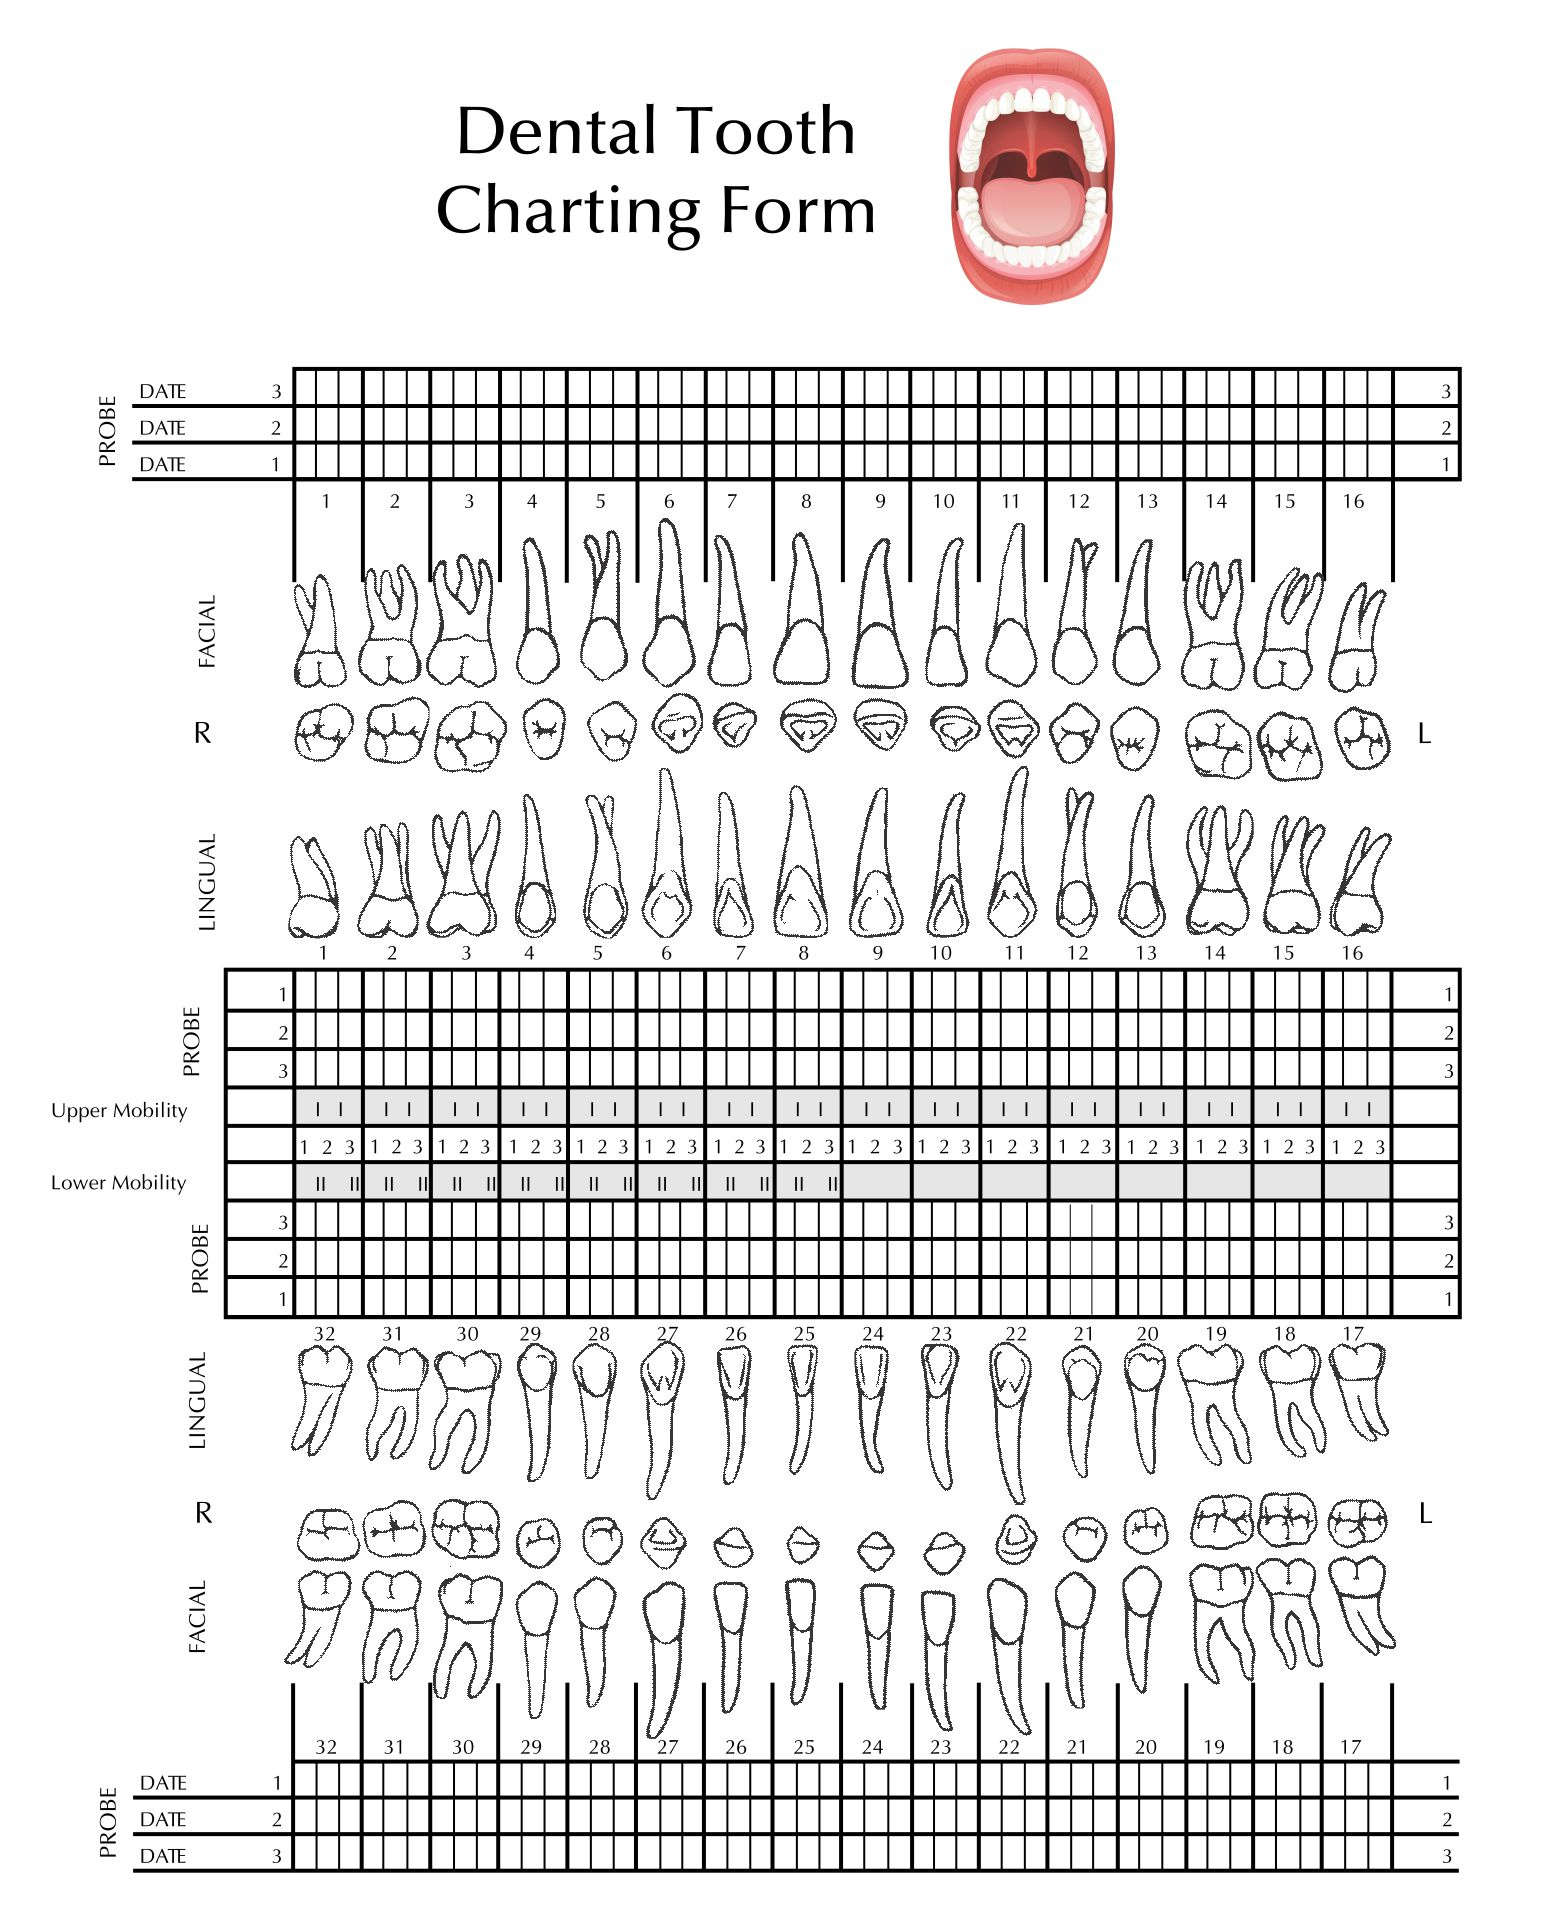 Dental Tooth Charting Form